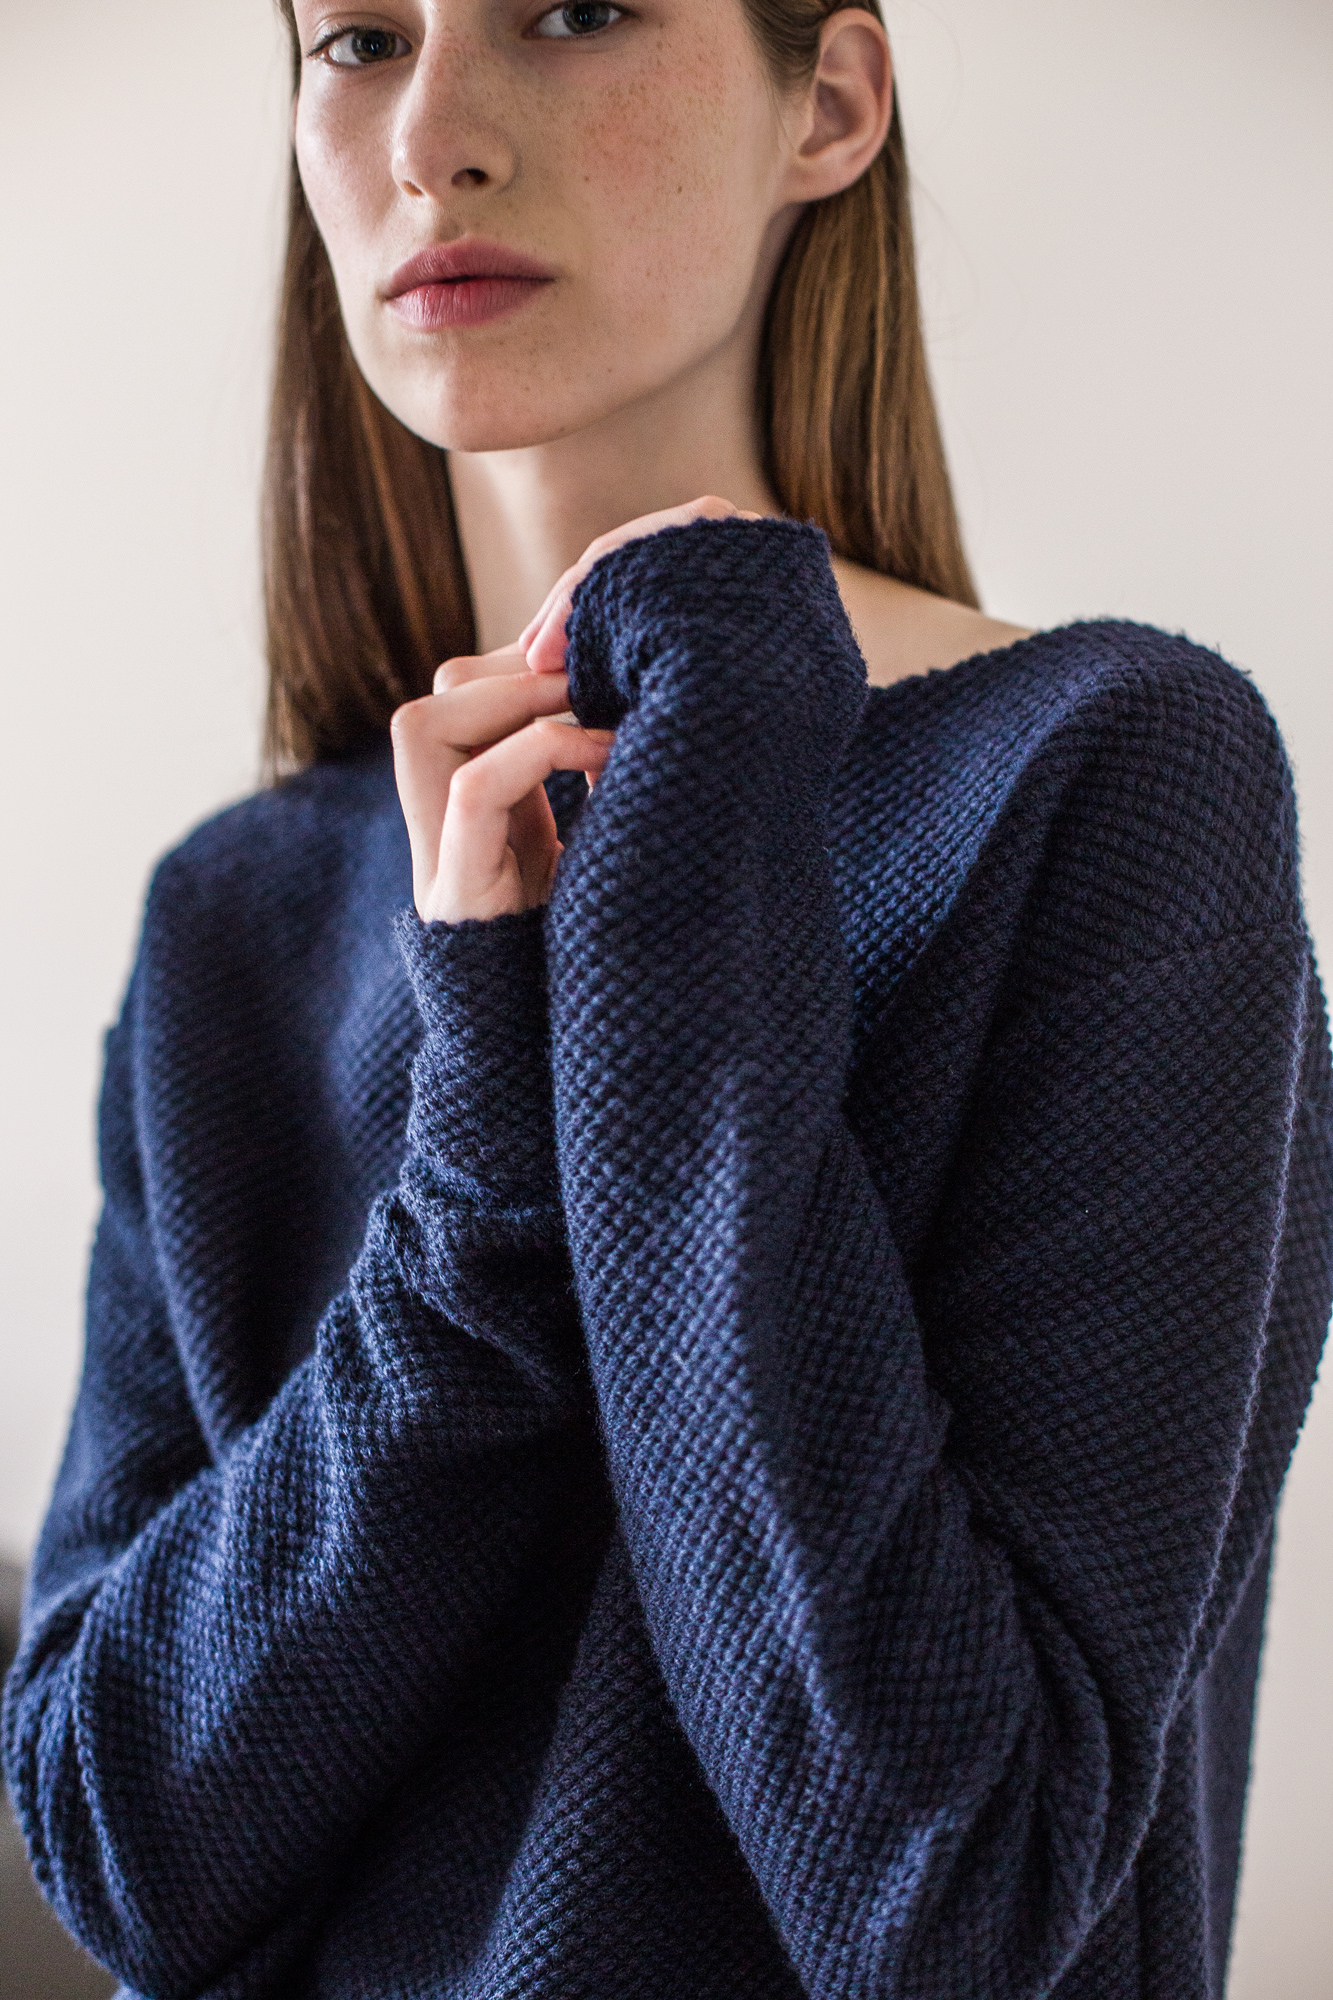 wearenotsisters_wrns_surveyor-sweater_03